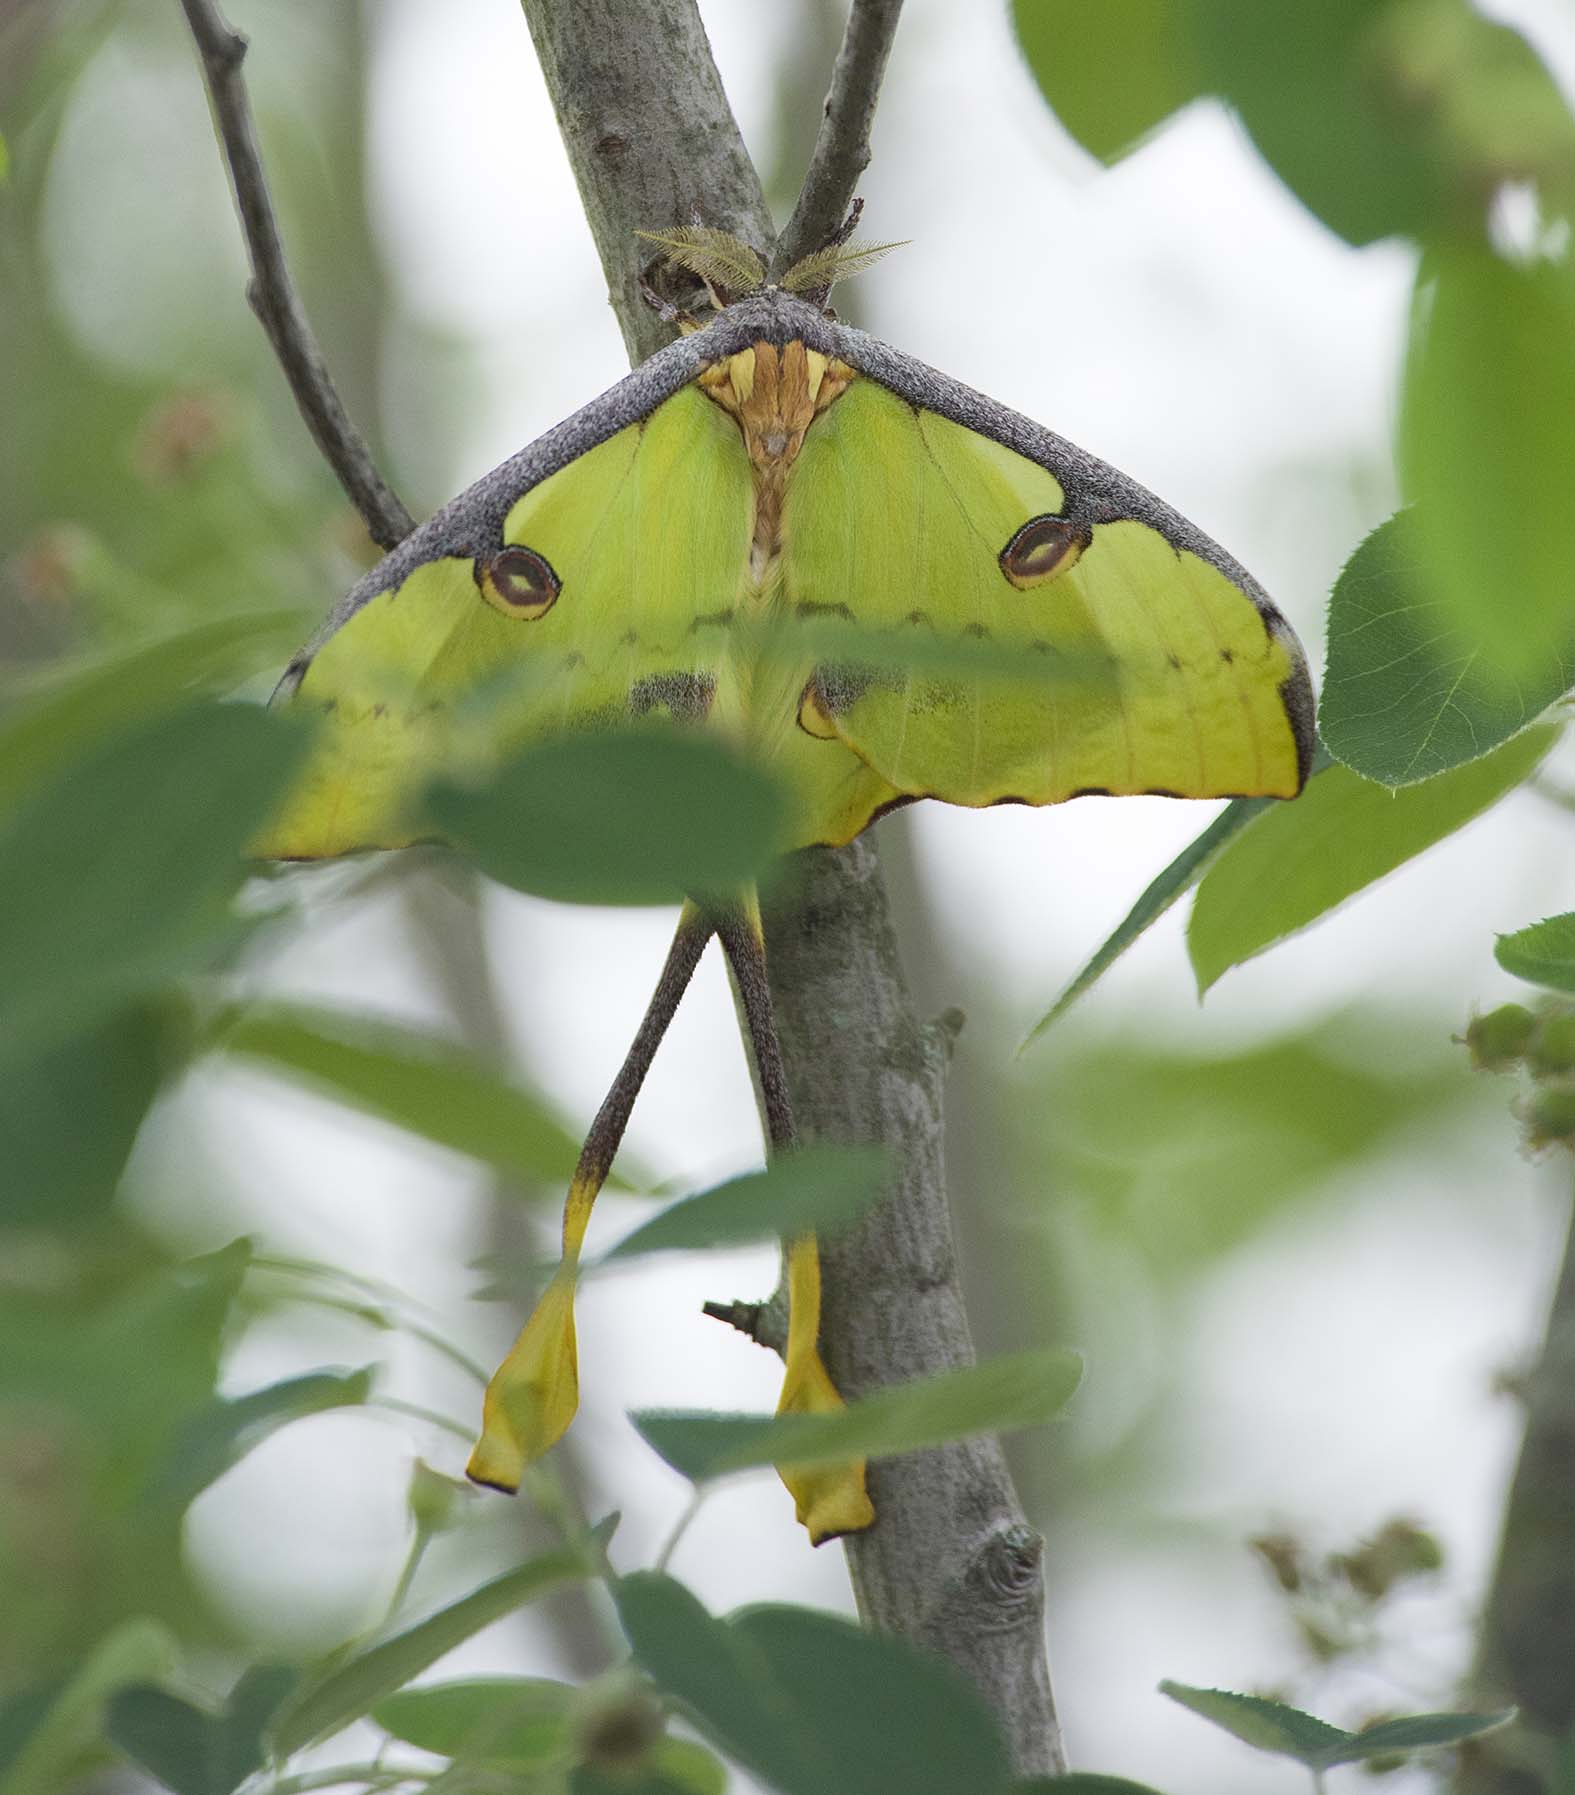 The Artfully Disguised Moon Moth